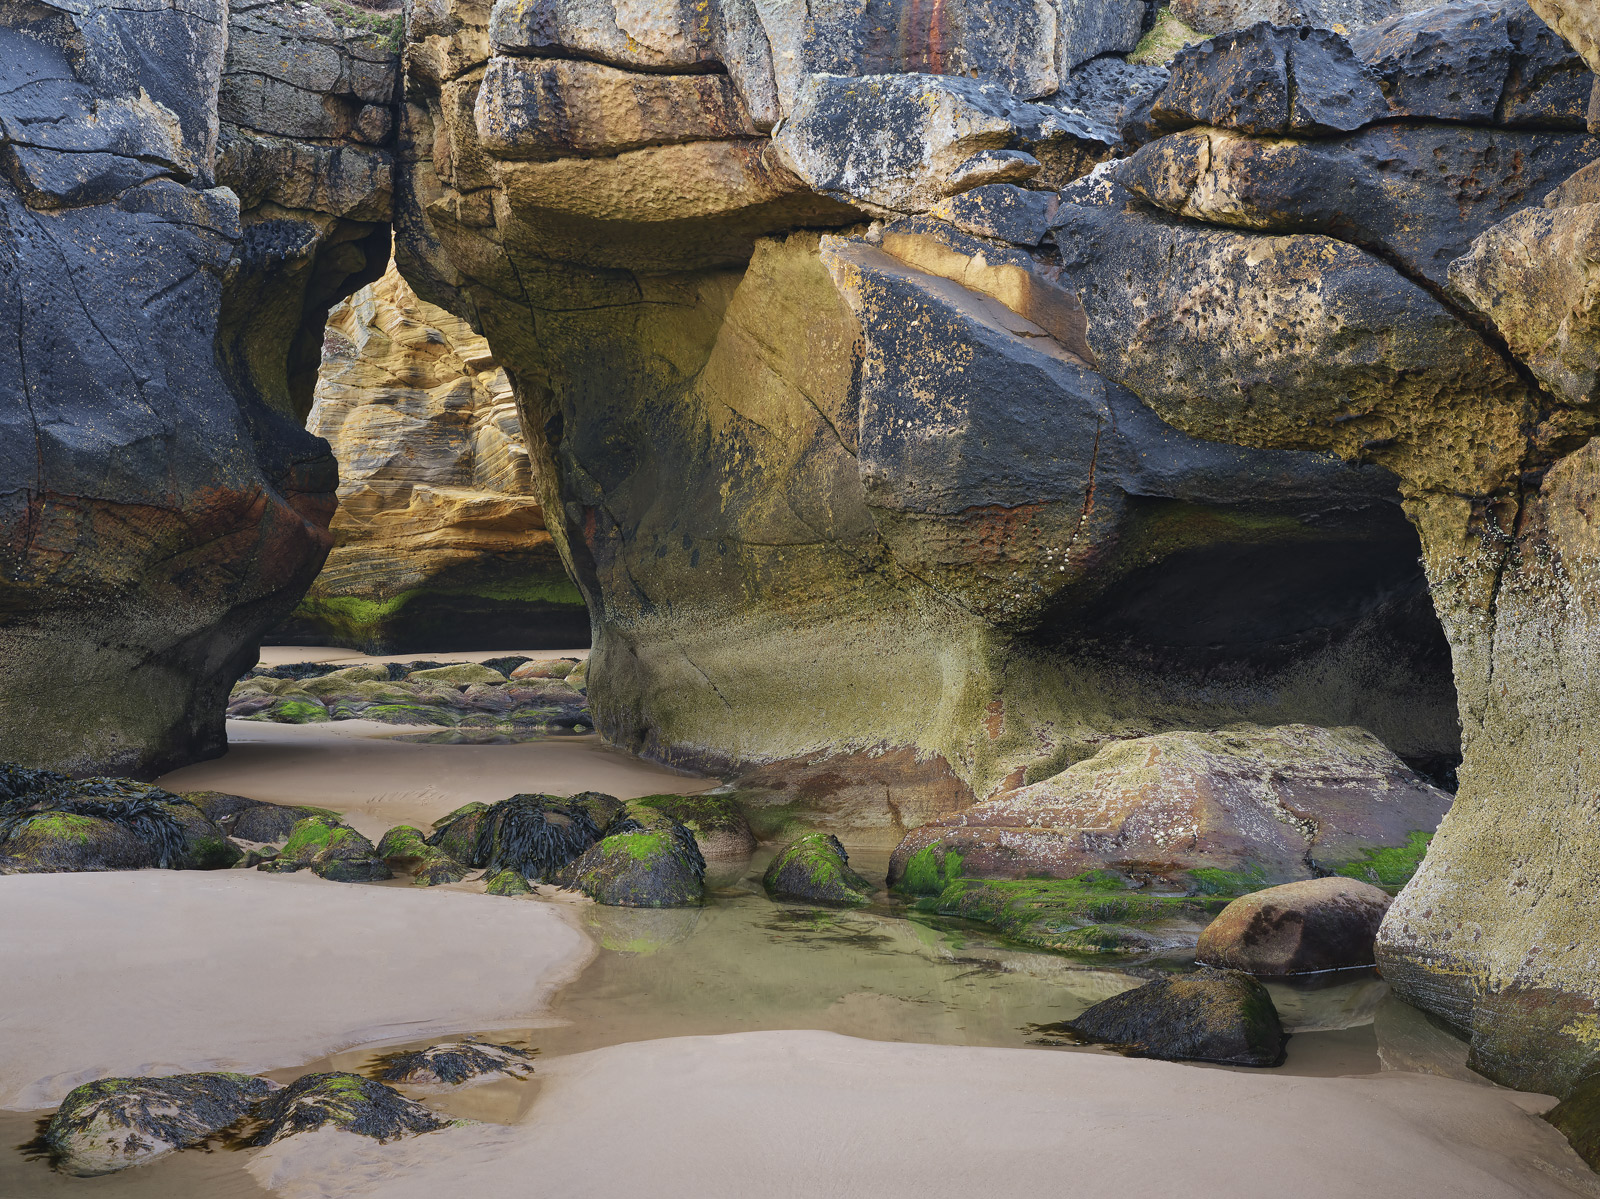 A lovely sculpted sandstone arch next to an equally beautiful sandstone cave at Cove Bay on the Moray coast at dusk.